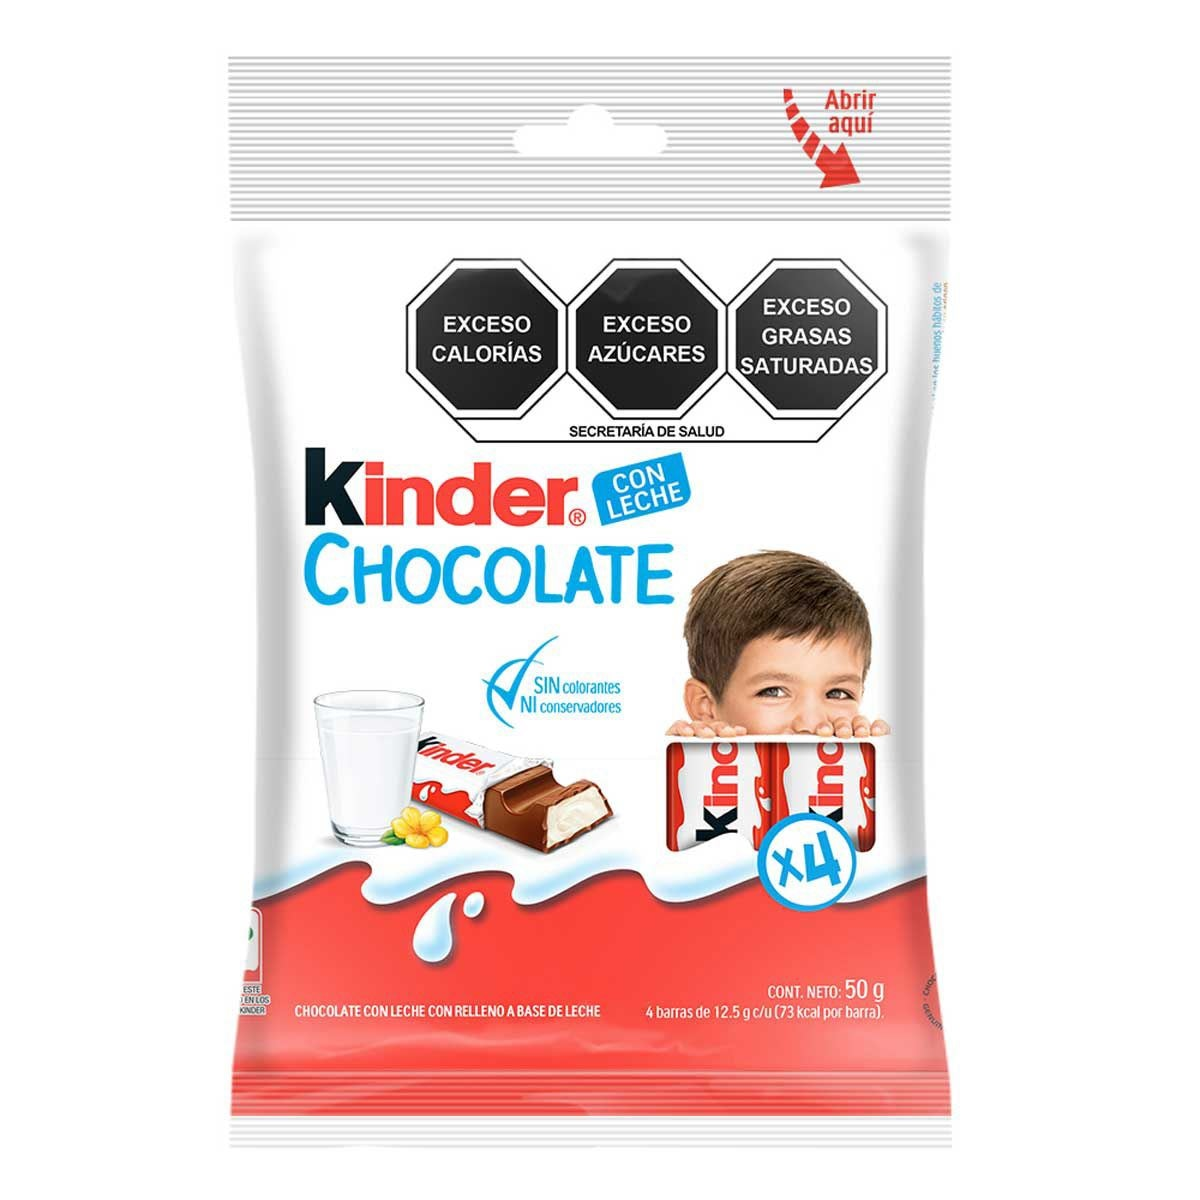 Kinder Chocolate T4x20x8 Flowpack